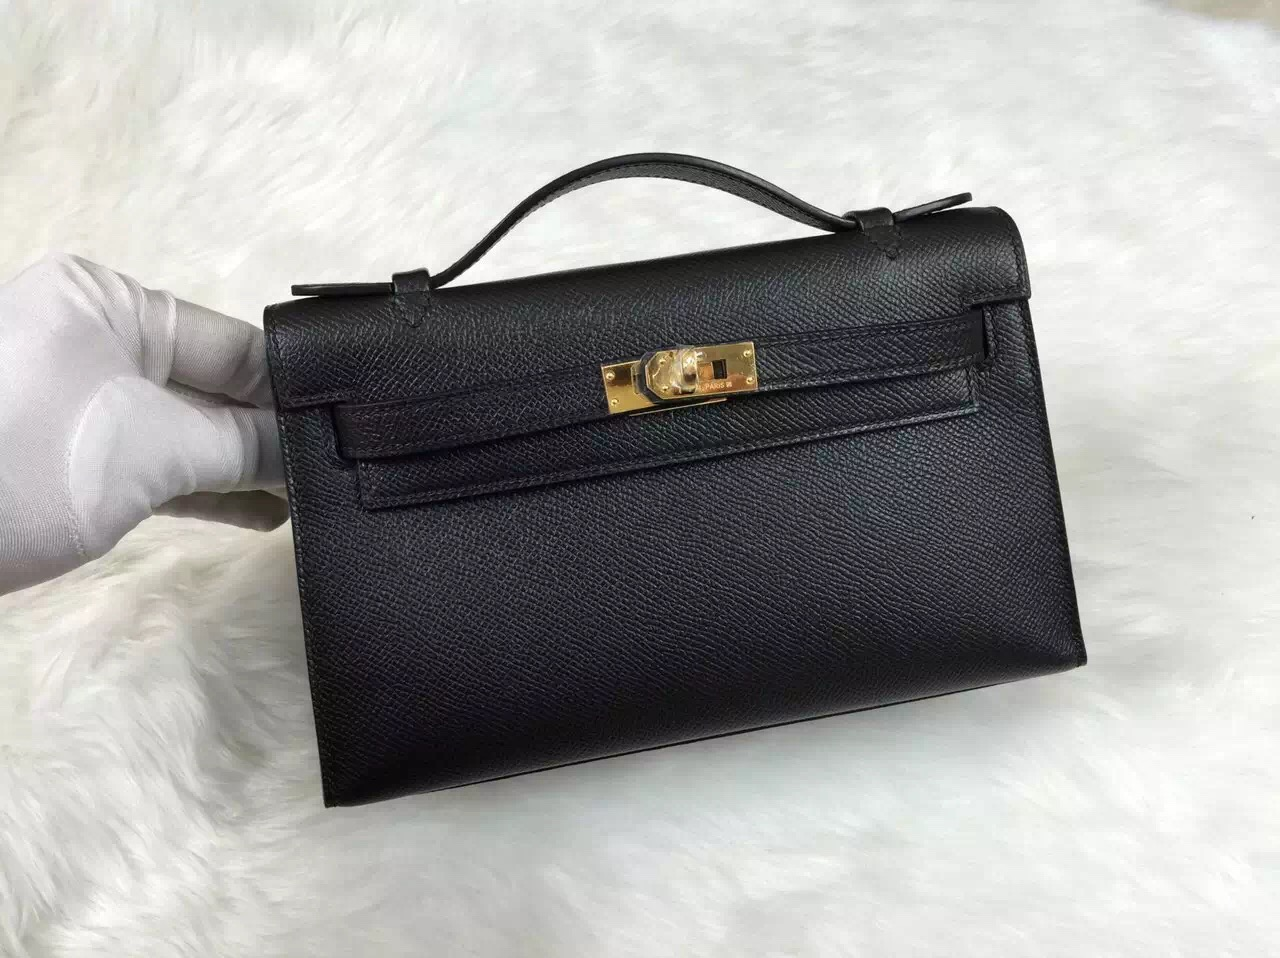 Discount Hermes Black Epsom Leather Mini Kelly Bag Gold Hardware Online